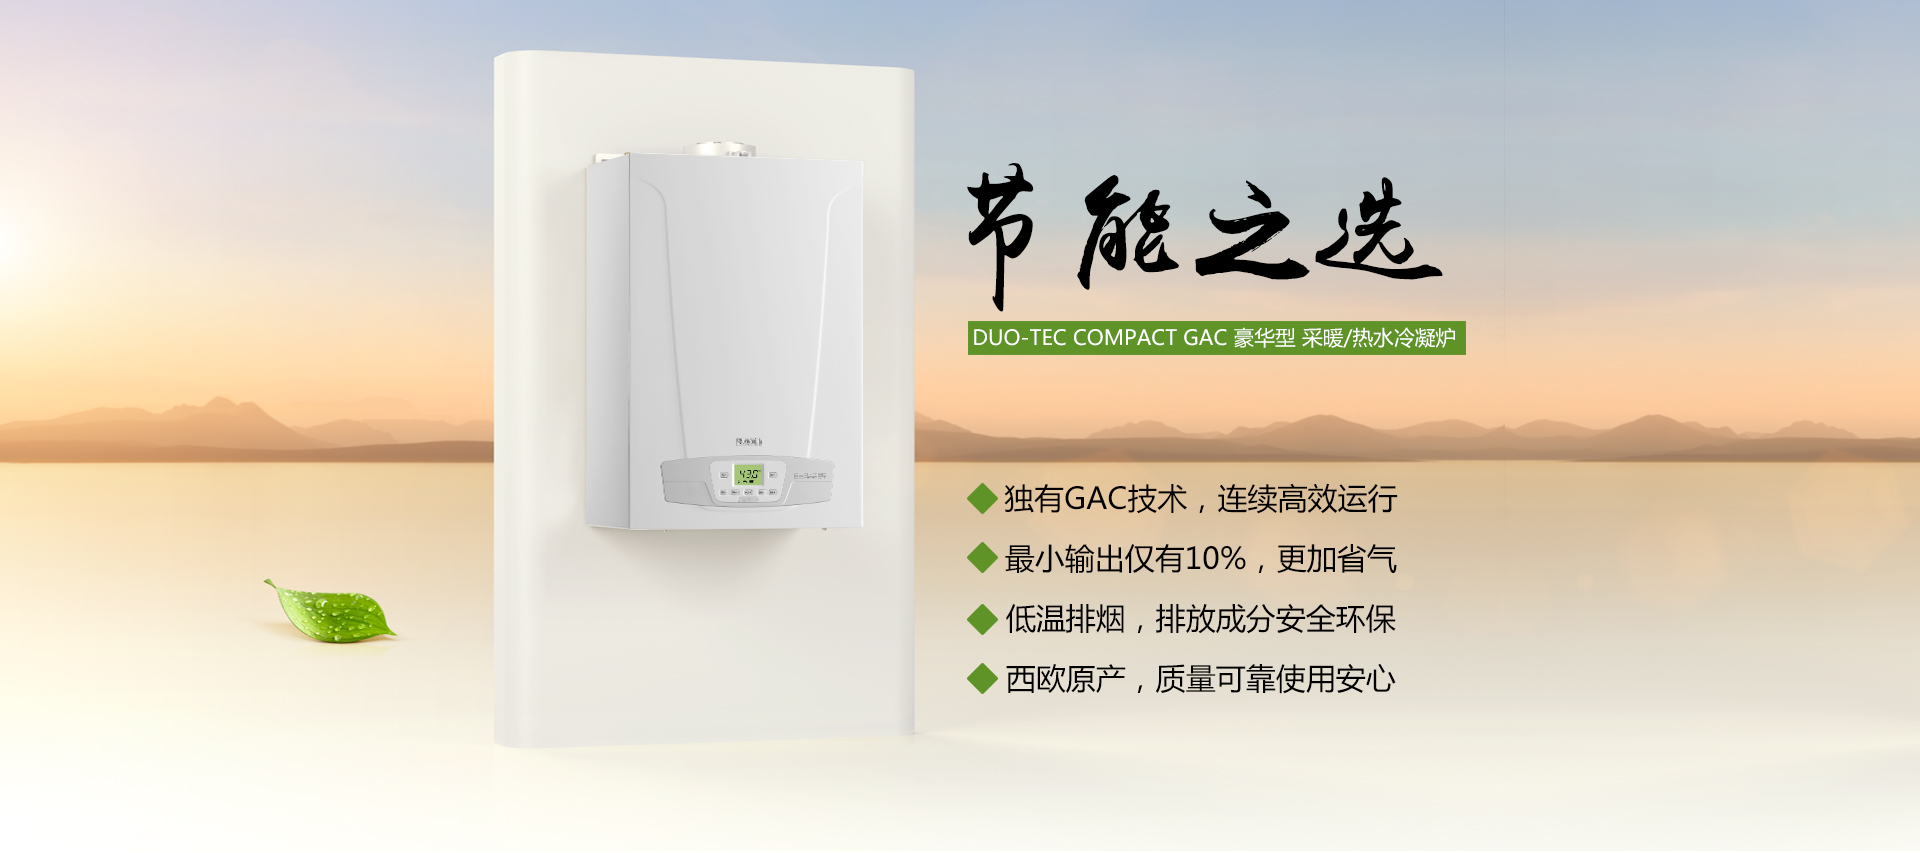 //baxi-bdr.jd.com/view_search-502825-0-5-1-24-1.html